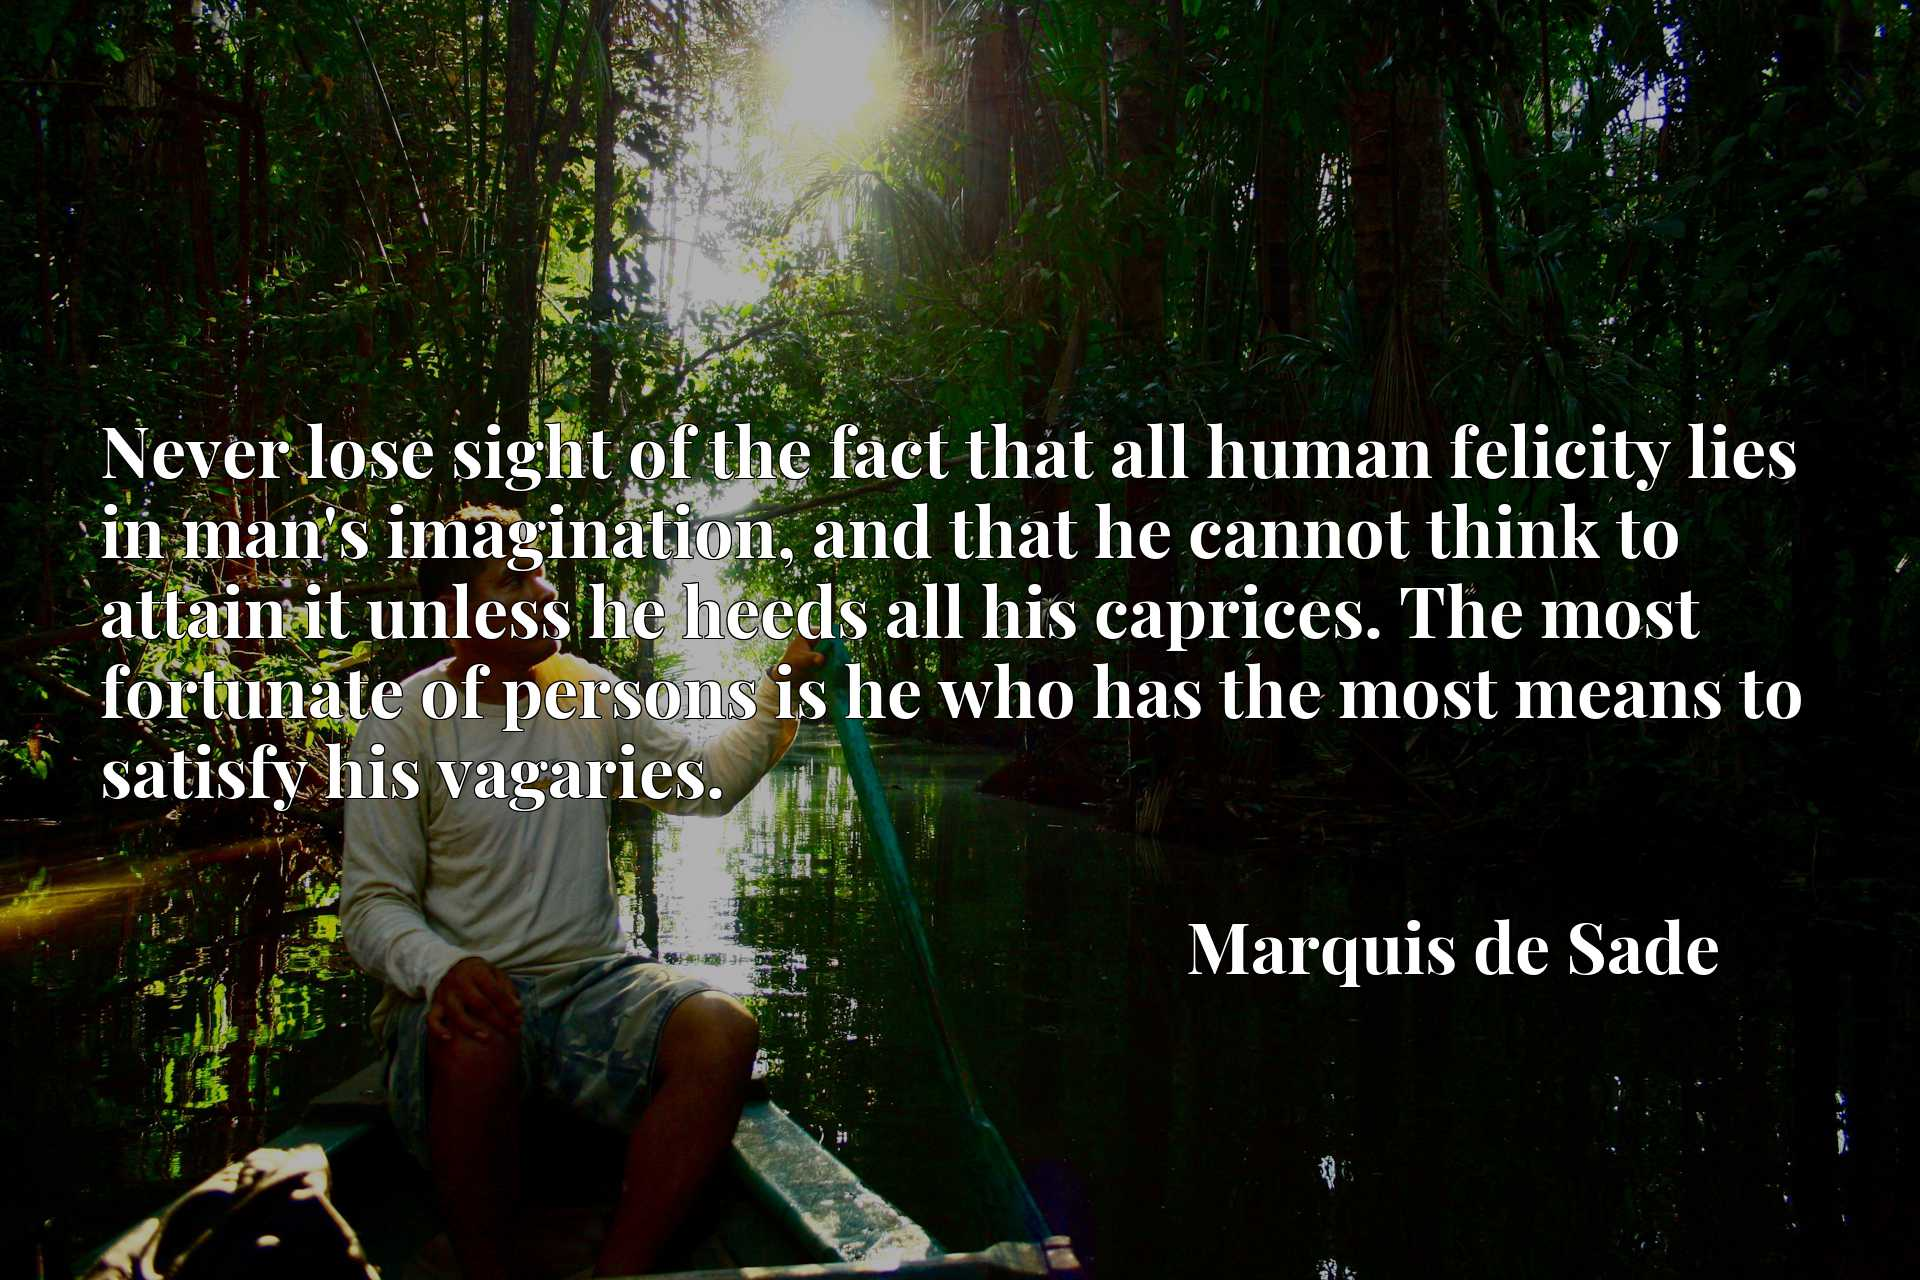 Quote Picture :Never lose sight of the fact that all human felicity lies in man's imagination, and that he cannot think to attain it unless he heeds all his caprices. The most fortunate of persons is he who has the most means to satisfy his vagaries.